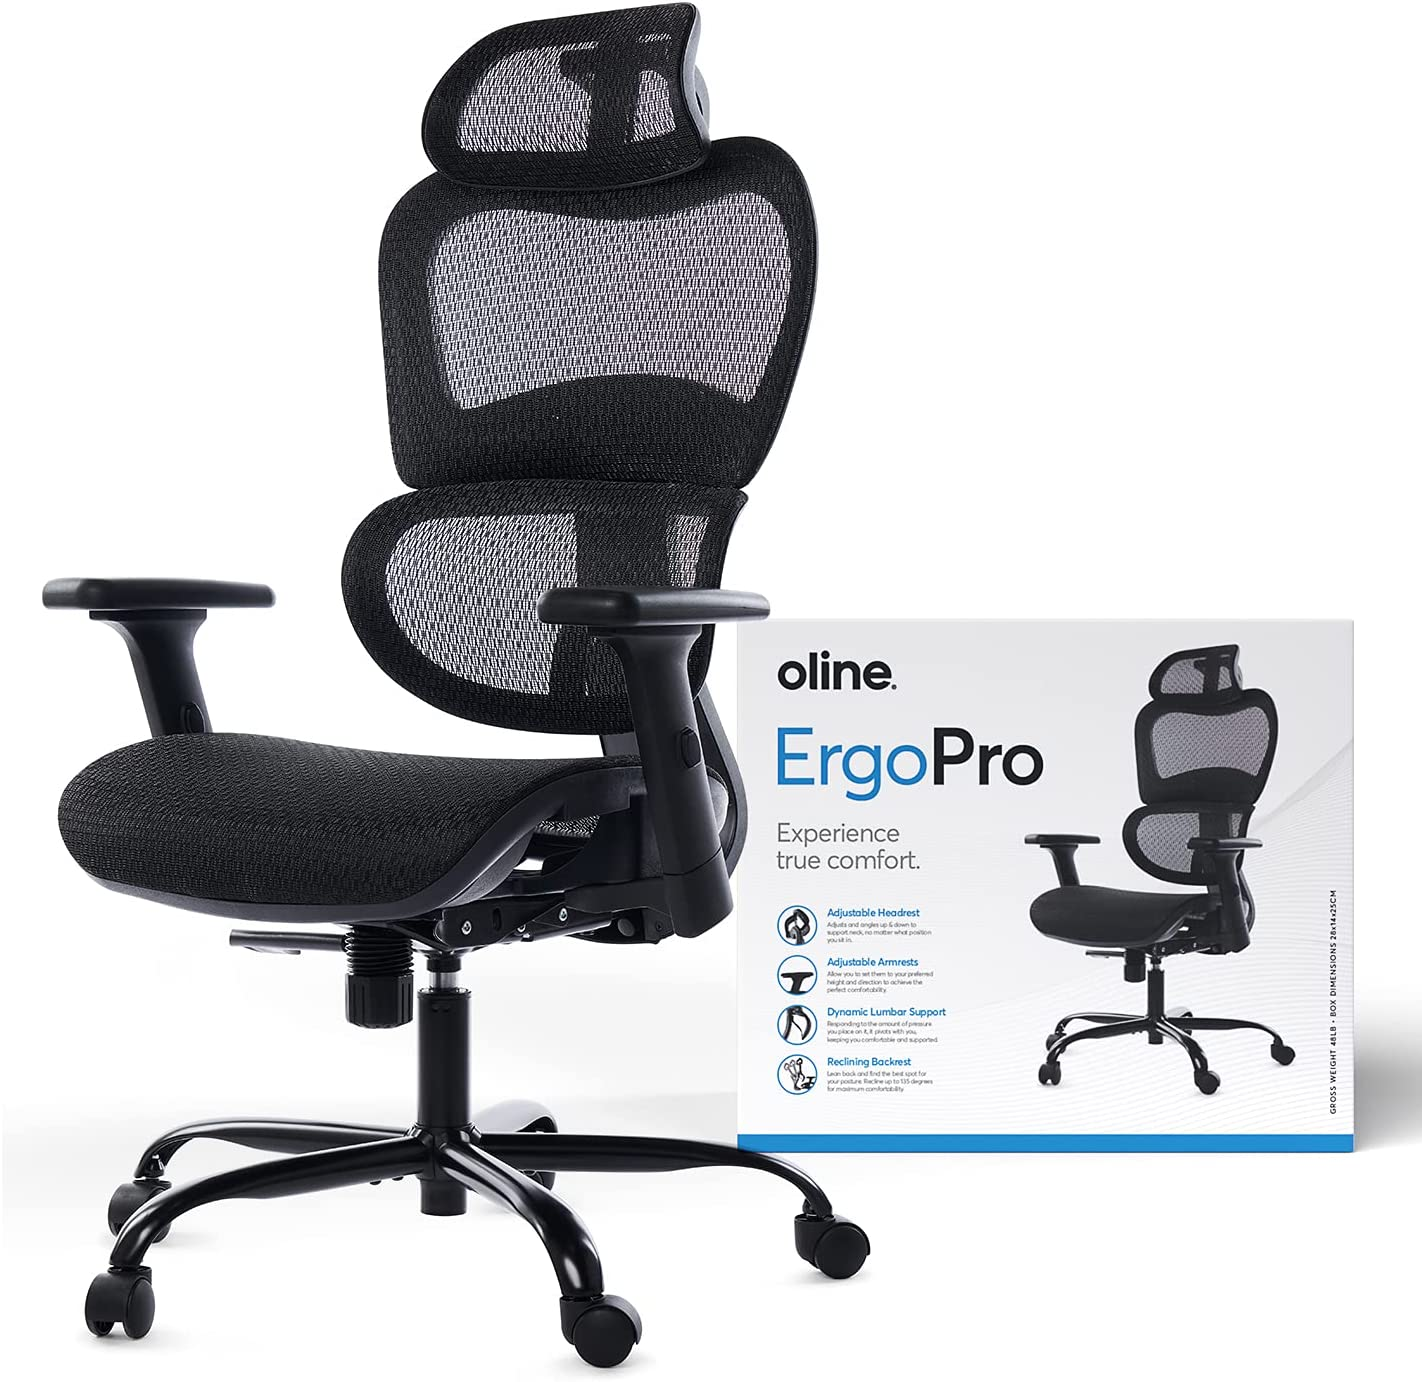 Oline ErgoPro Ergonomic Office Chair - Rolling Desk Chair with 3D Adjustable Armrest, 3D Lumbar Support and Premium Caster Wheels - Mesh Computer Chair, Gaming Chairs, Executive Swivel Chair (Black)